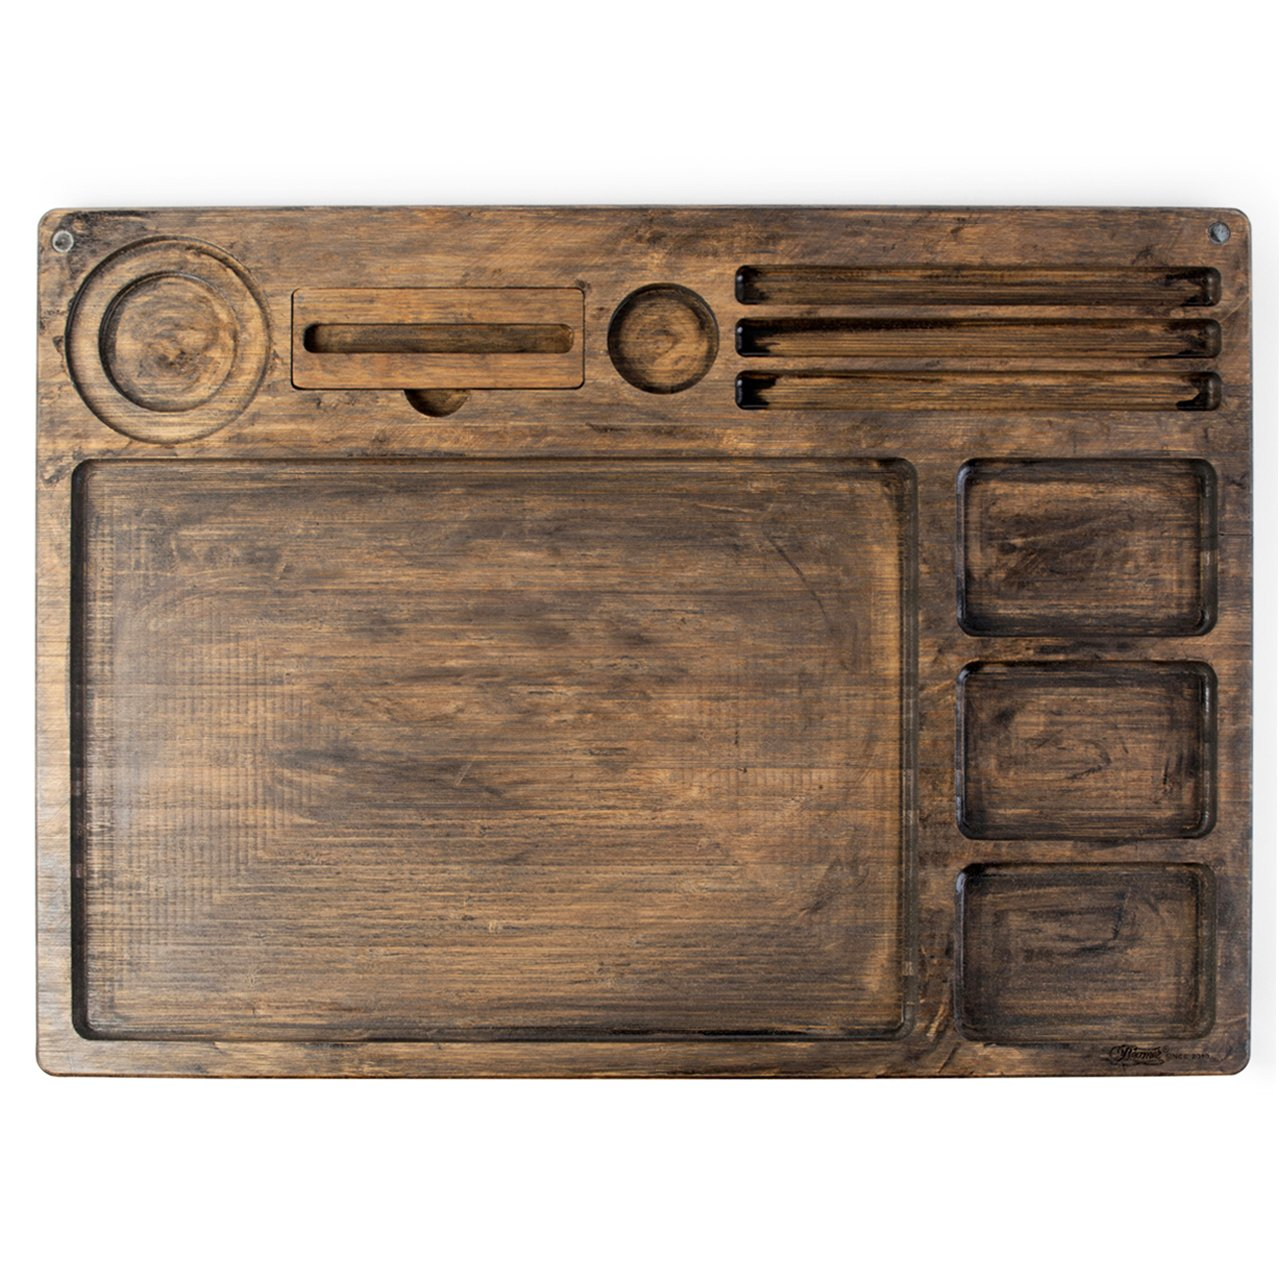 Beamer Goliath All In One Natural Bamboo Rolling Tray - Dark Finish - 21 X 15 inch